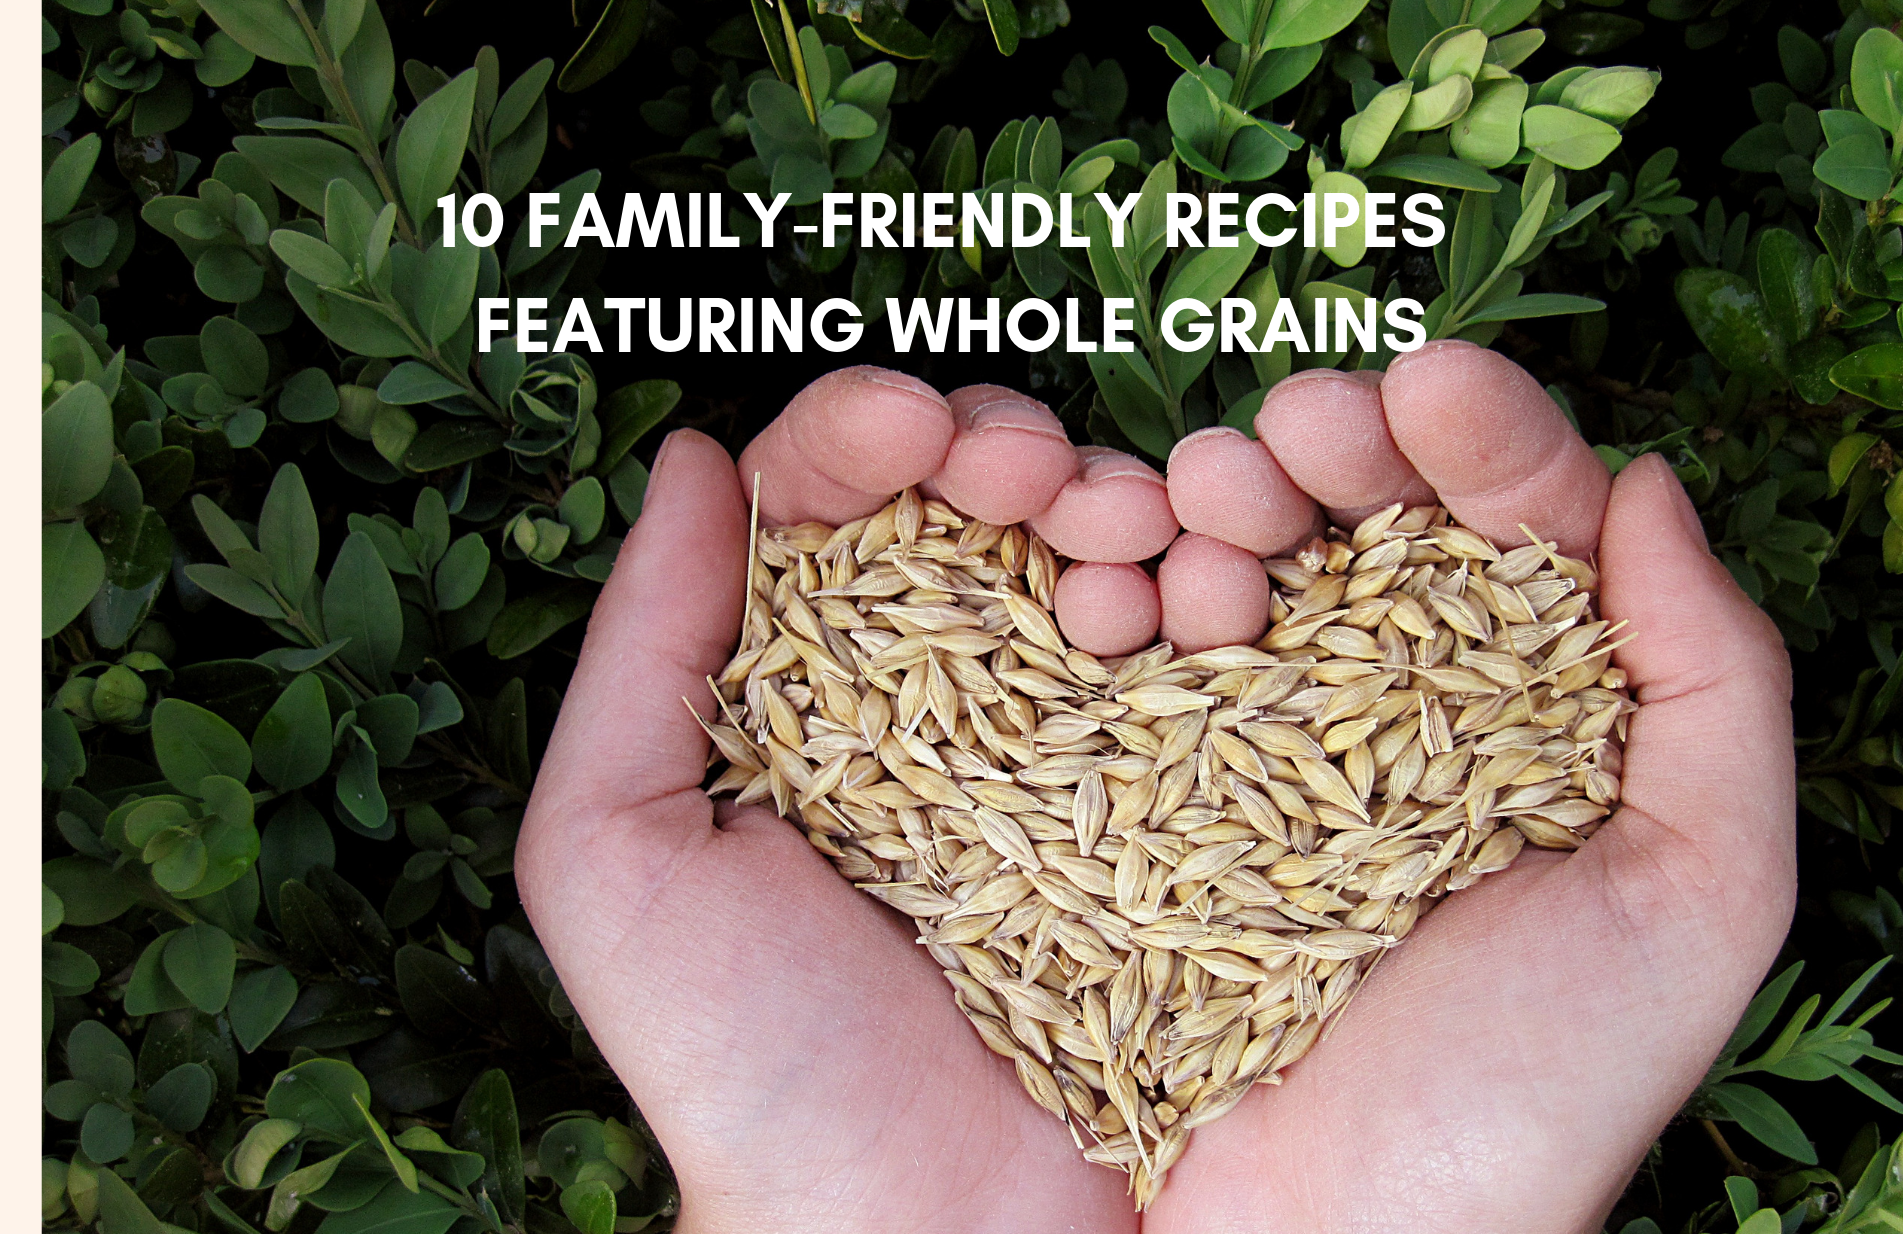 10 Family-Friendly Recipes for Serving Whole Grains